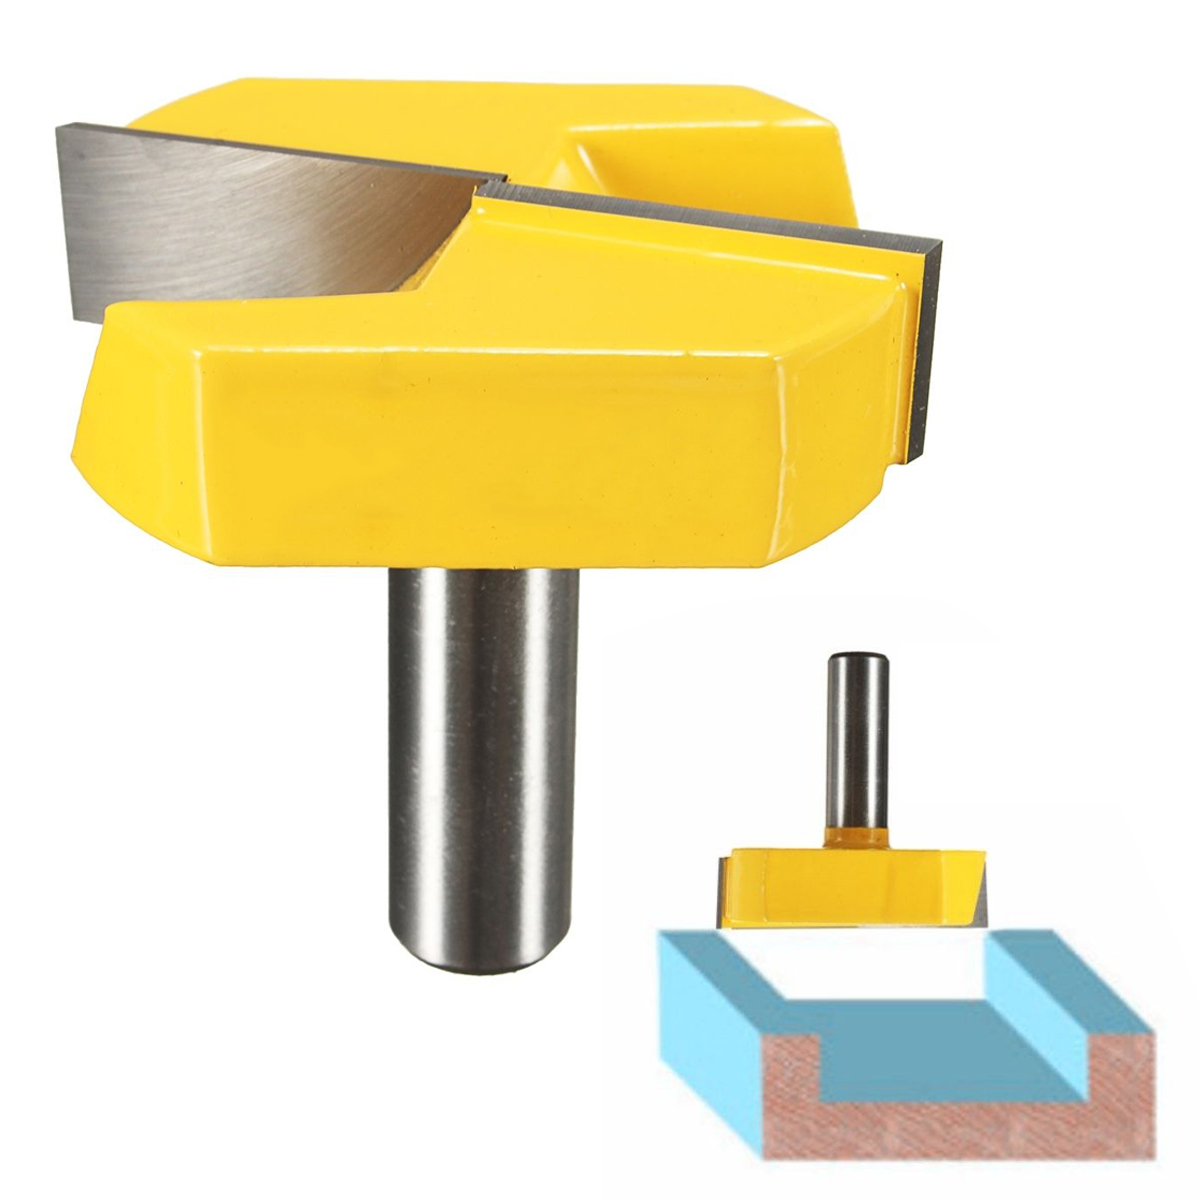 Strong 1/2 Shank 2-1/4 Diameter Bottom Cleaning Router Bit Mayitr Woodworking Router Bits Milling Cutter for MDF Solid Wood mayitr woodworking cutter bit 1 2 shank engraving molding router bit shaker for wood milling cutter